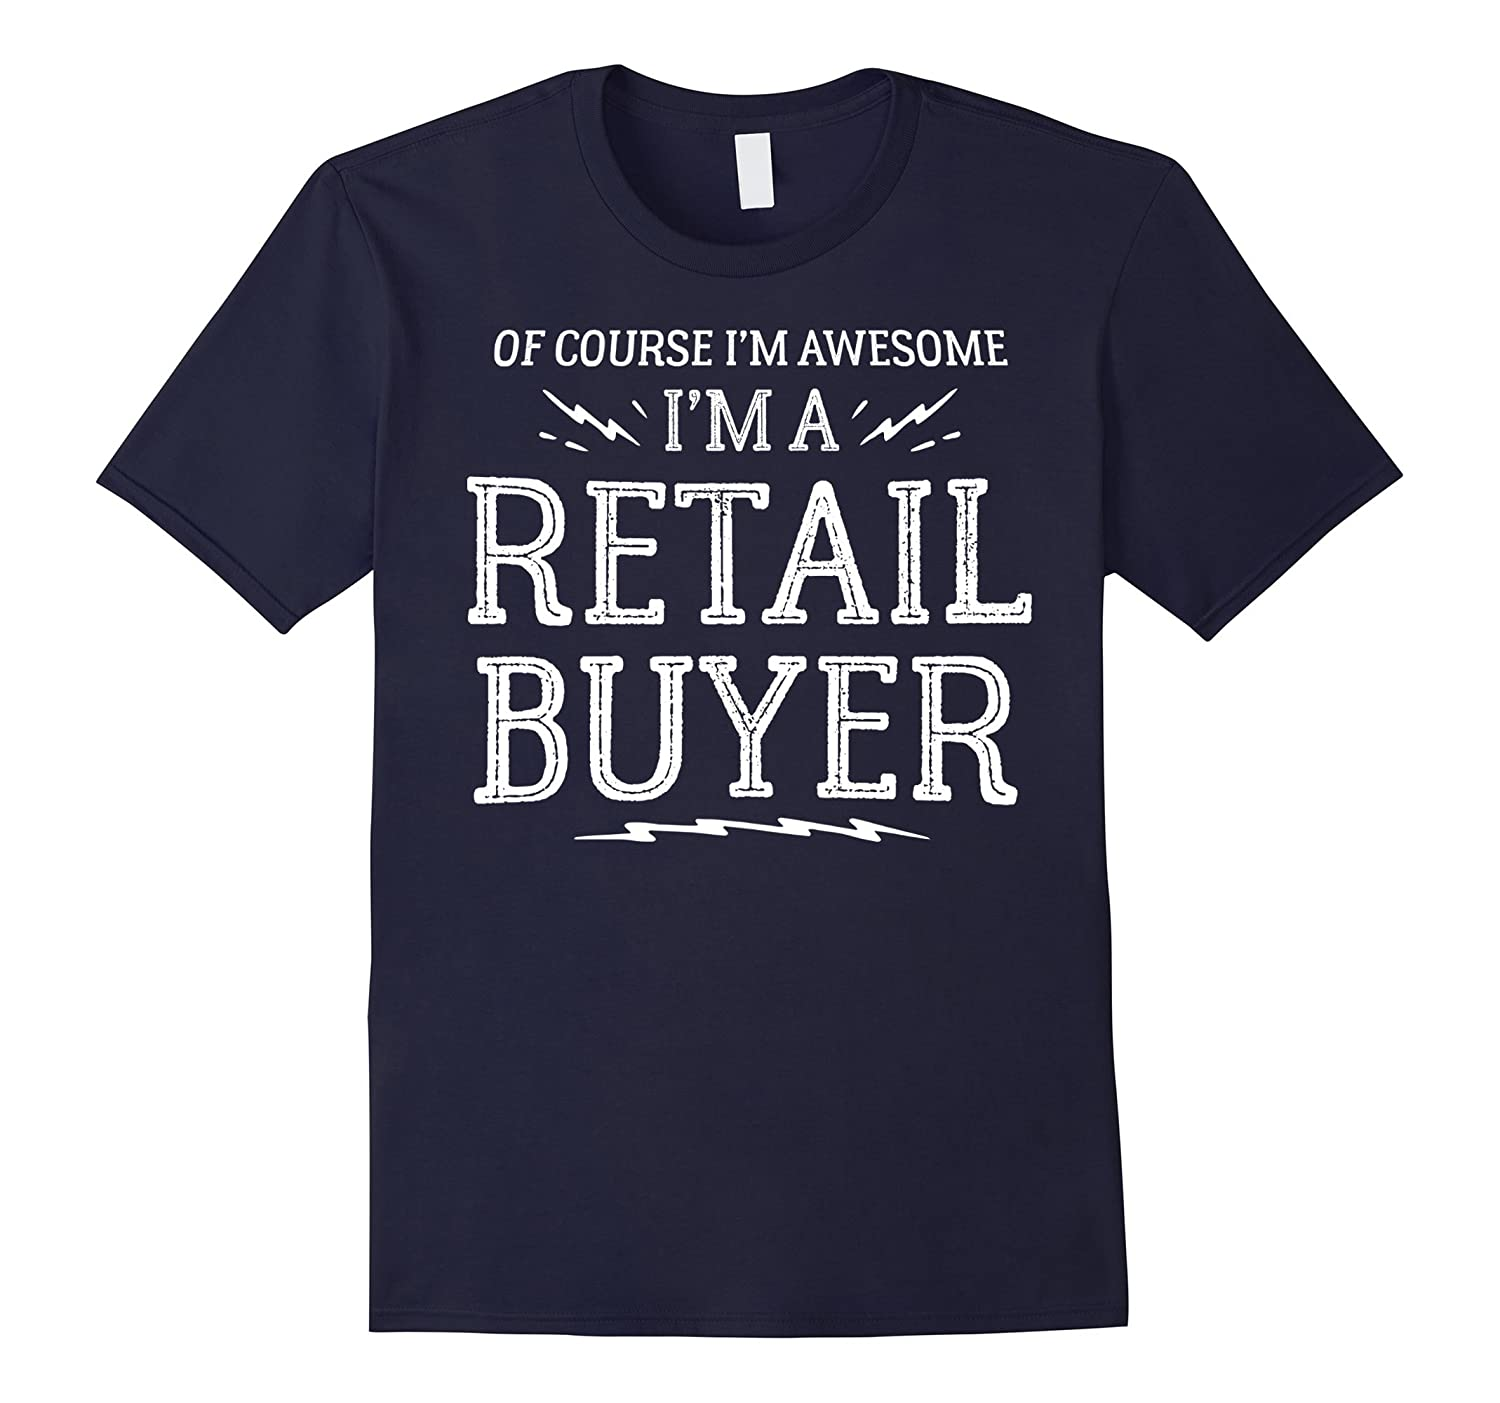 Retail Buyer Work T-Shirt - Of Course Im Awesome-TJ